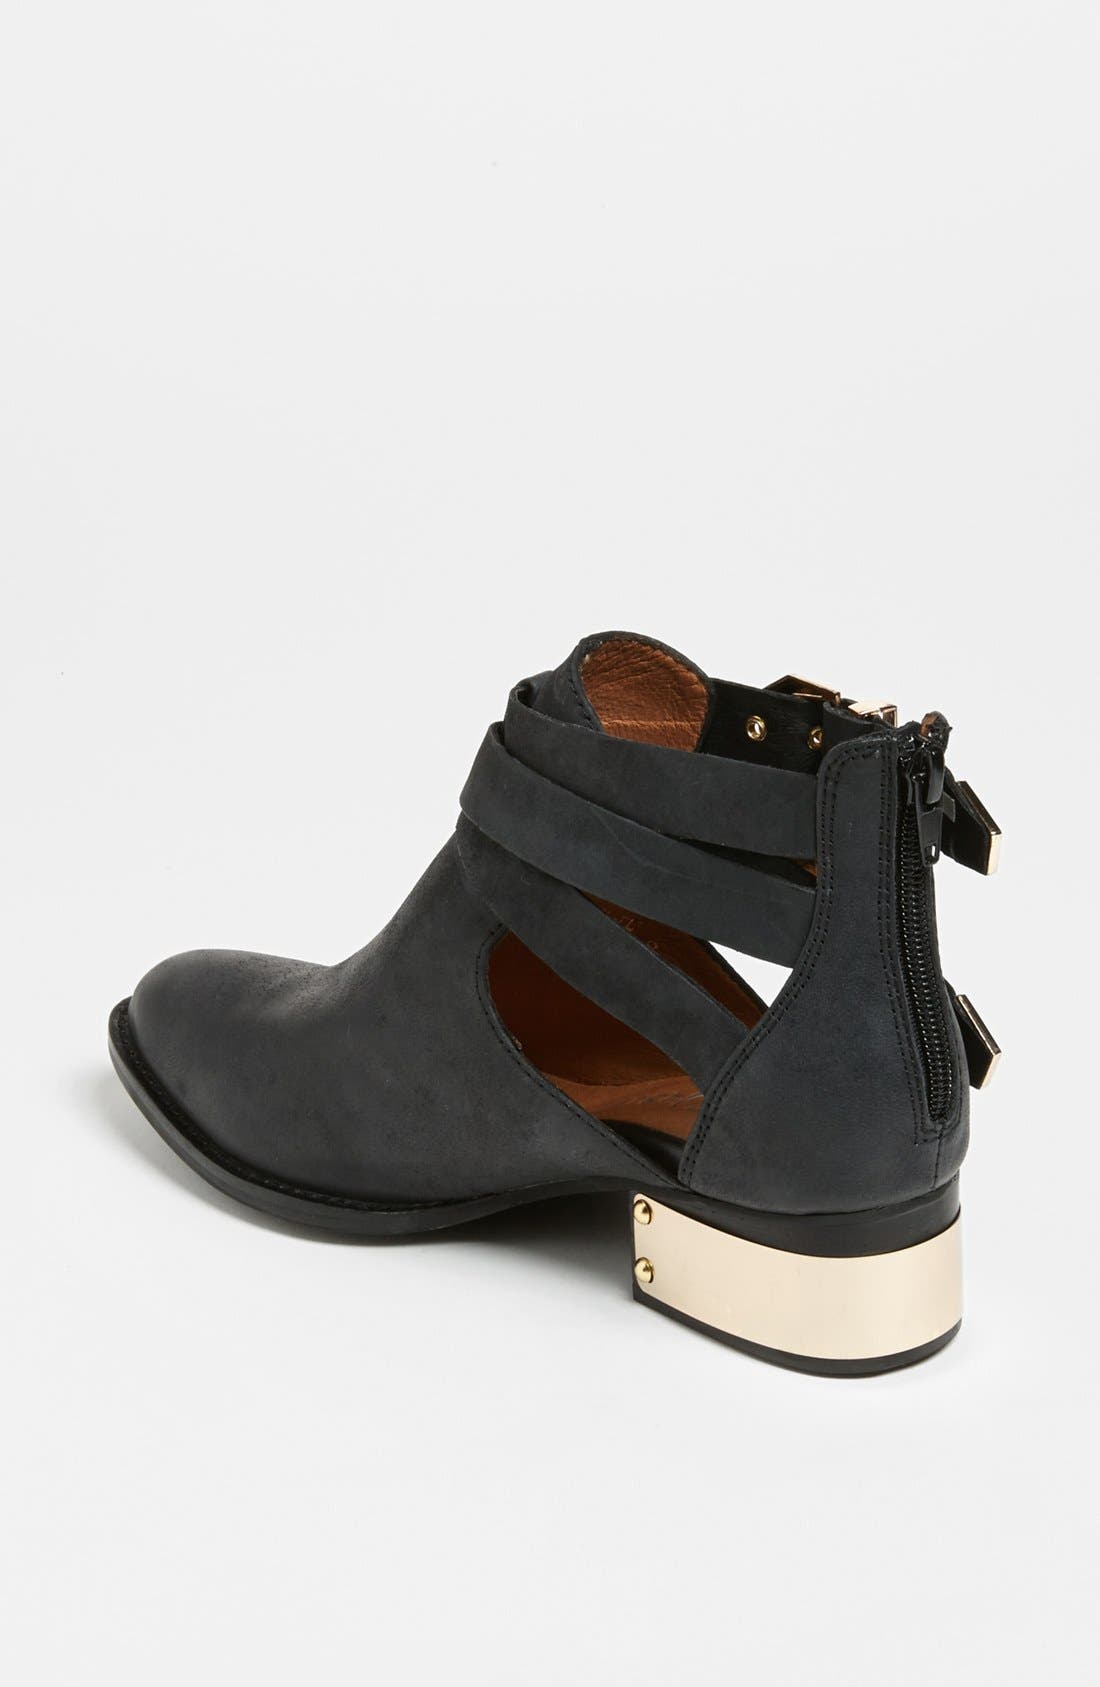 JEFFREY CAMPBELL,                             'Everly' Bootie,                             Alternate thumbnail 6, color,                             002